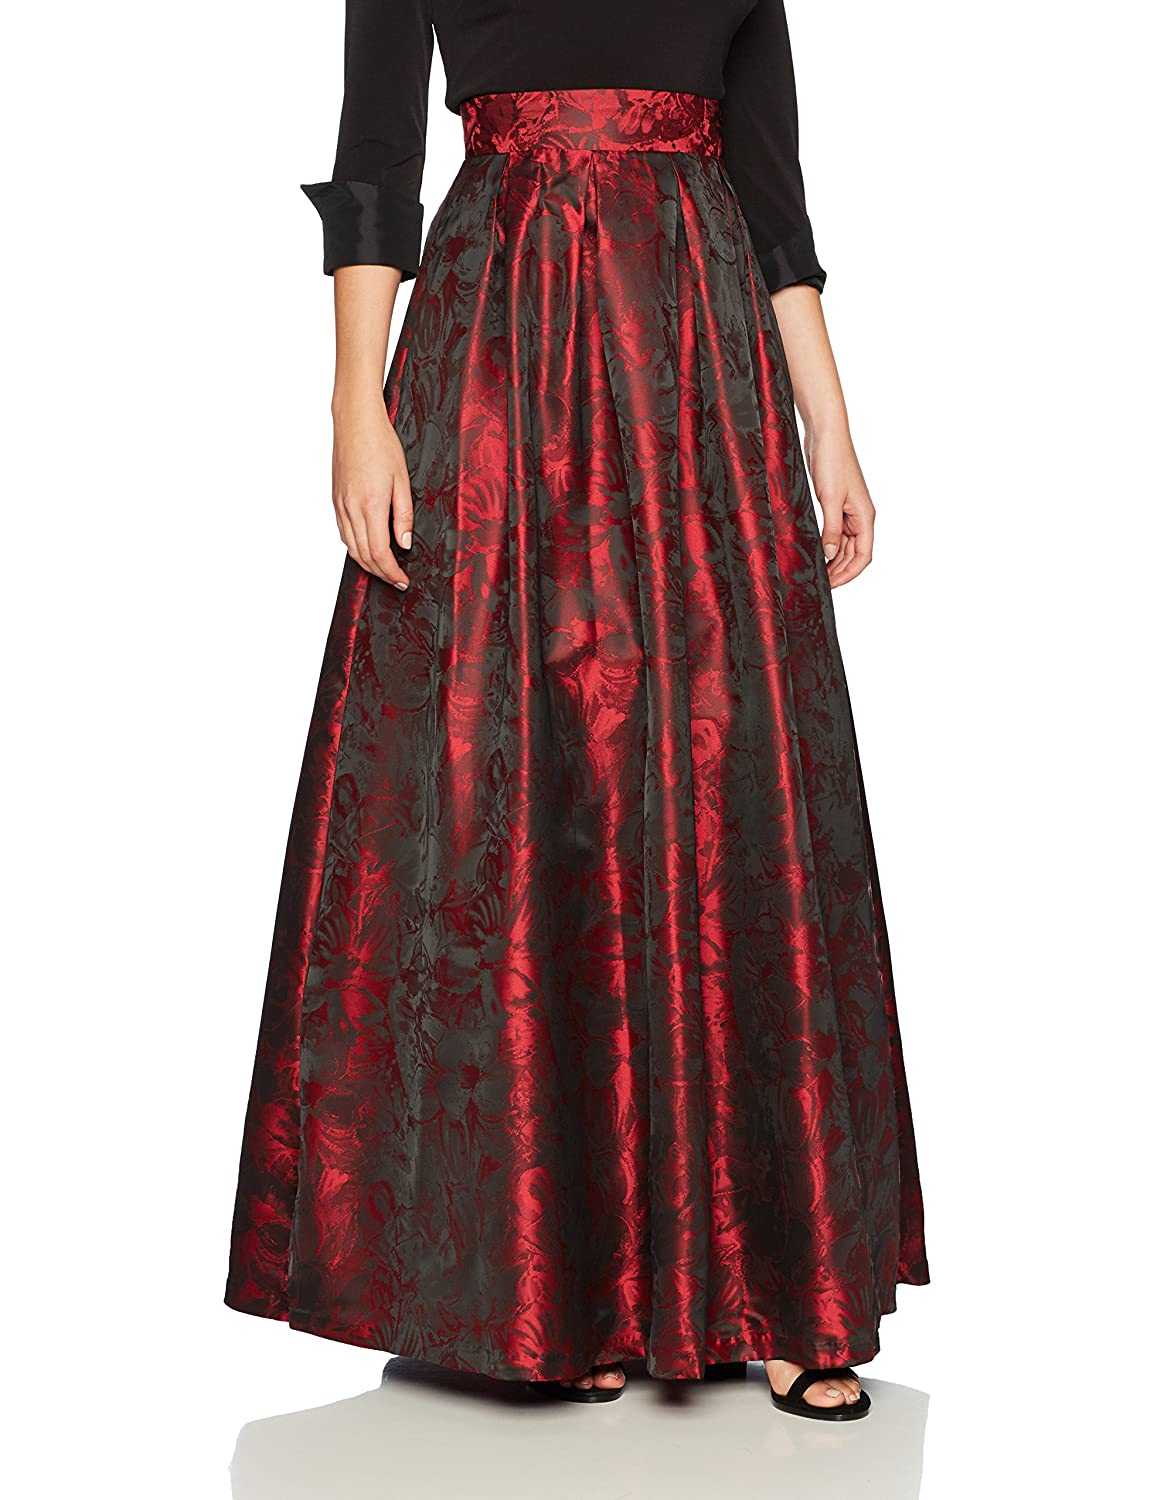 Victorian Dresses, Clothing: Patterns, Costumes, Custom Dresses Jessica Howard Womens Separate Ballgown Skirt $138.00 AT vintagedancer.com